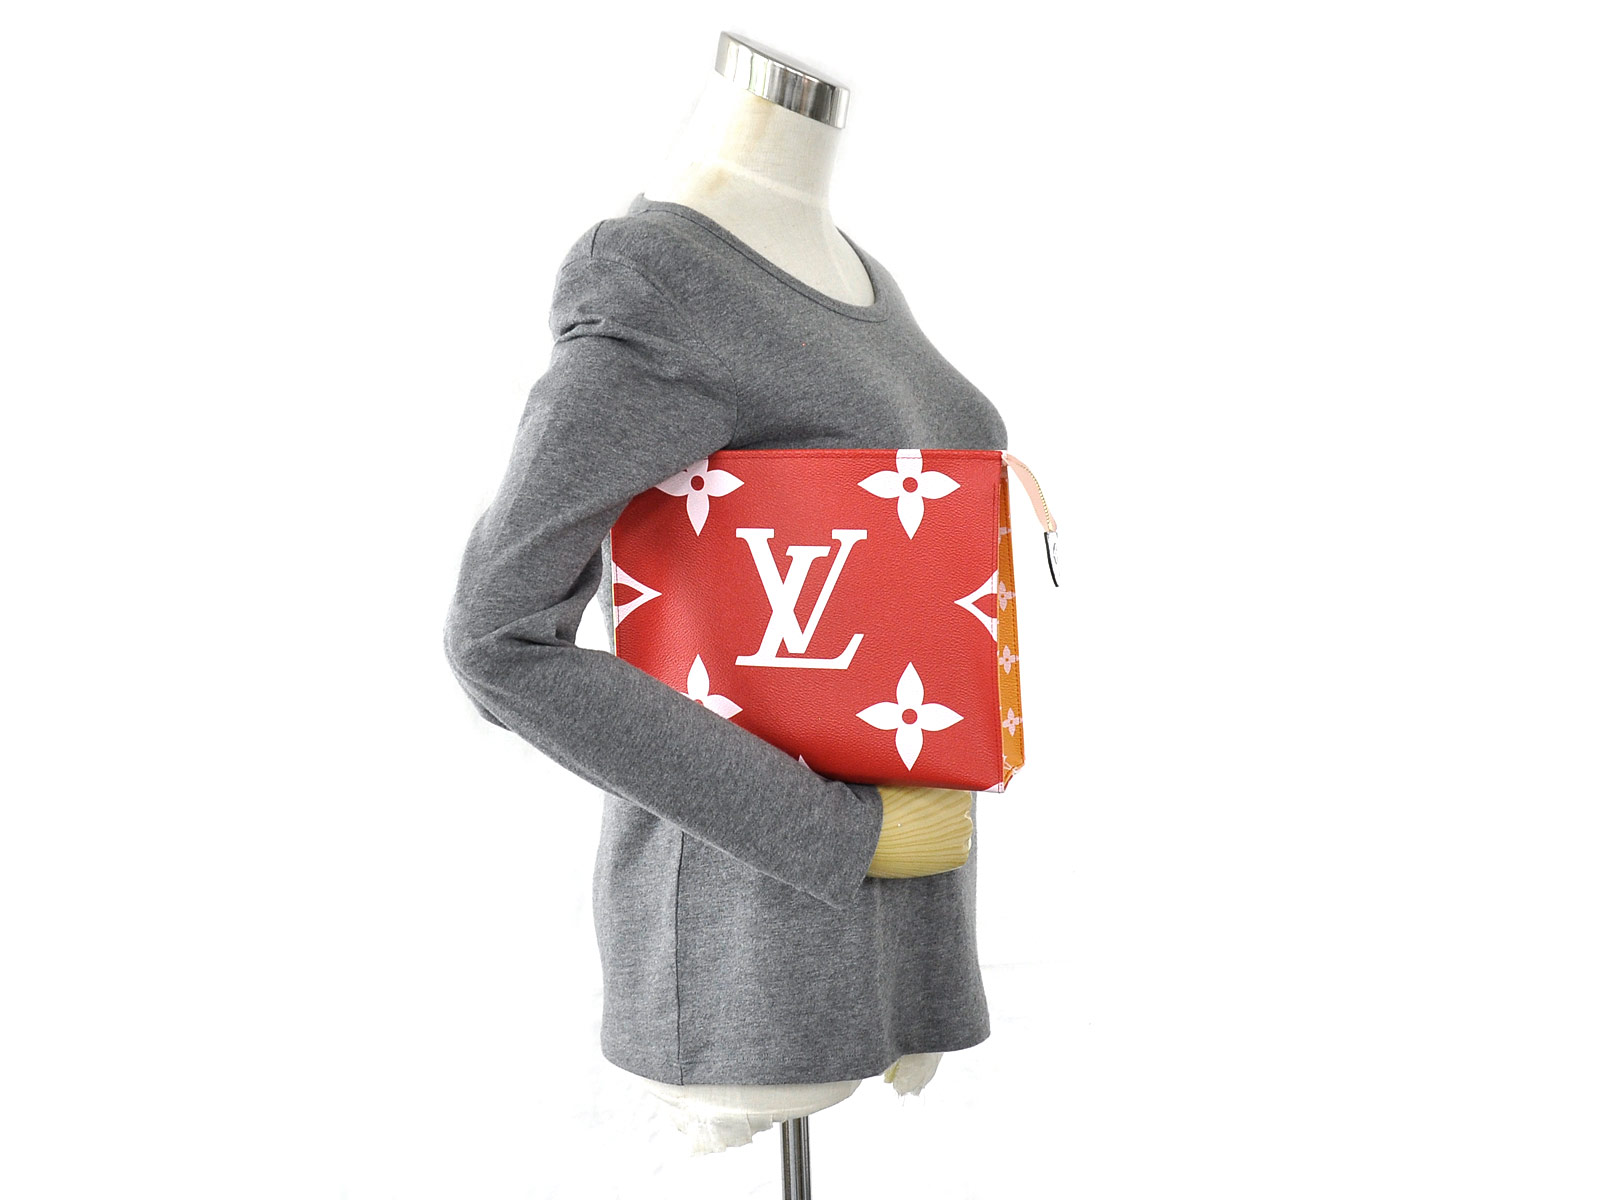 Auth-Louis-Vuitton-Monogram-Giant-Pochette-Toilette-Clutch-Bag-Rouge-Pink-96998 thumbnail 2